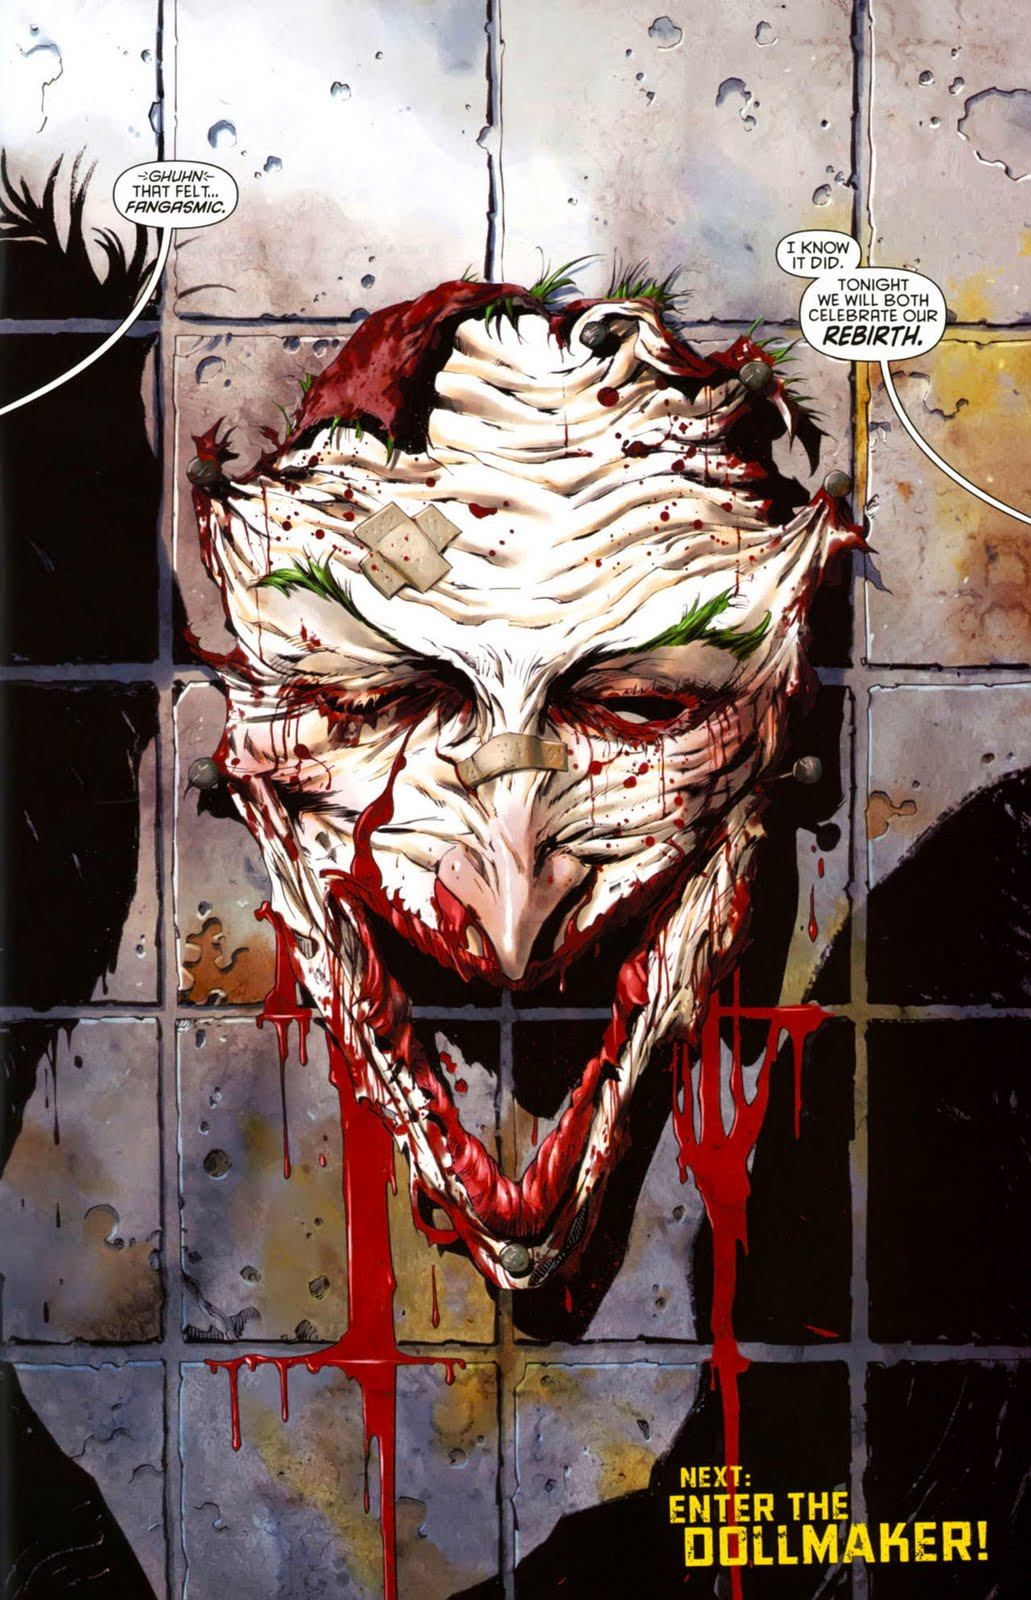 Detective-Comics-1-Cliffhanger-Joker-Doll-Maker-2011.jpg